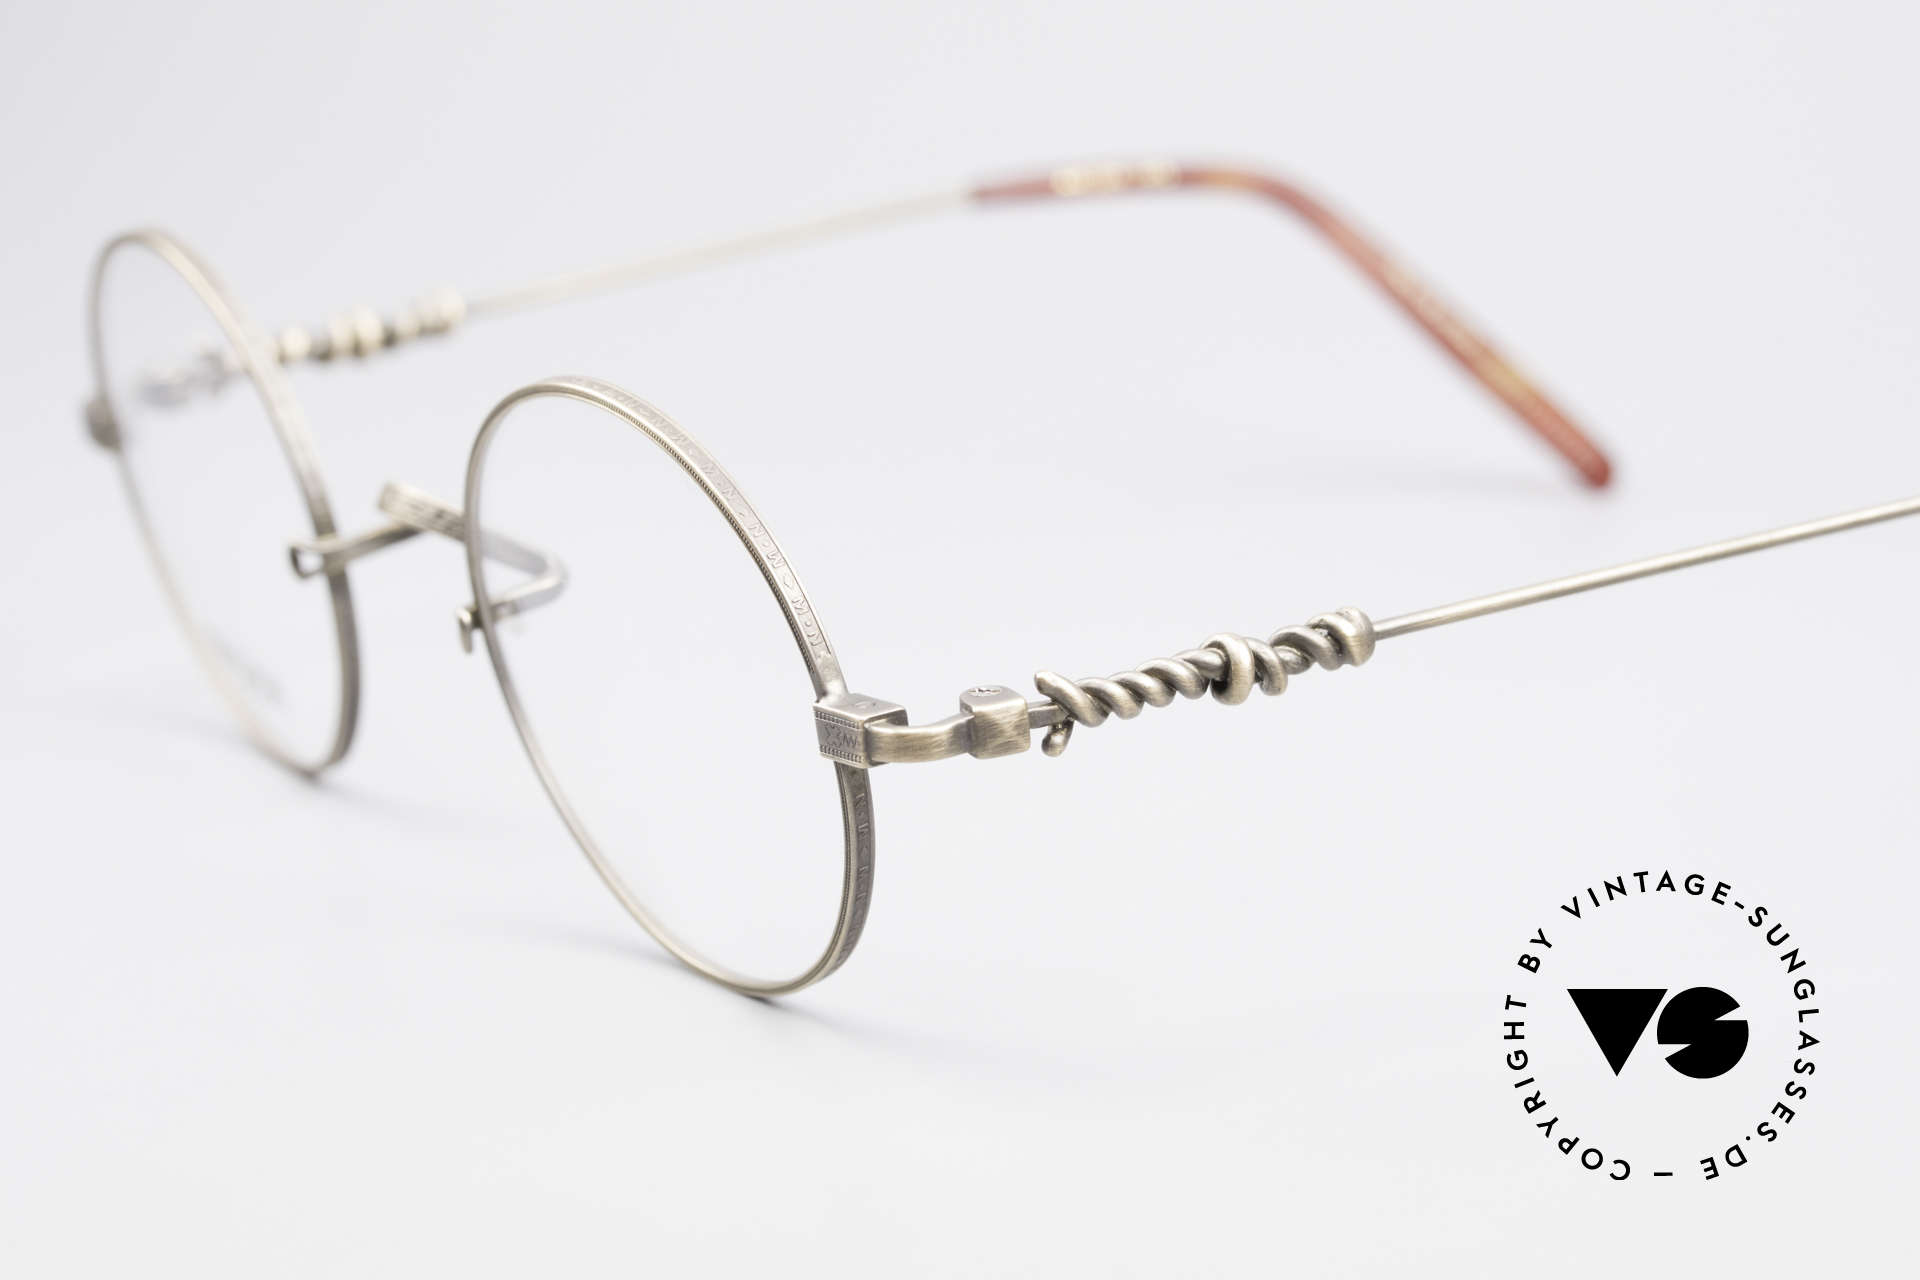 Matsuda 2869 90's Vintage Glasses Round, demo lenses can be easily replaced with prescriptions, Made for Men and Women